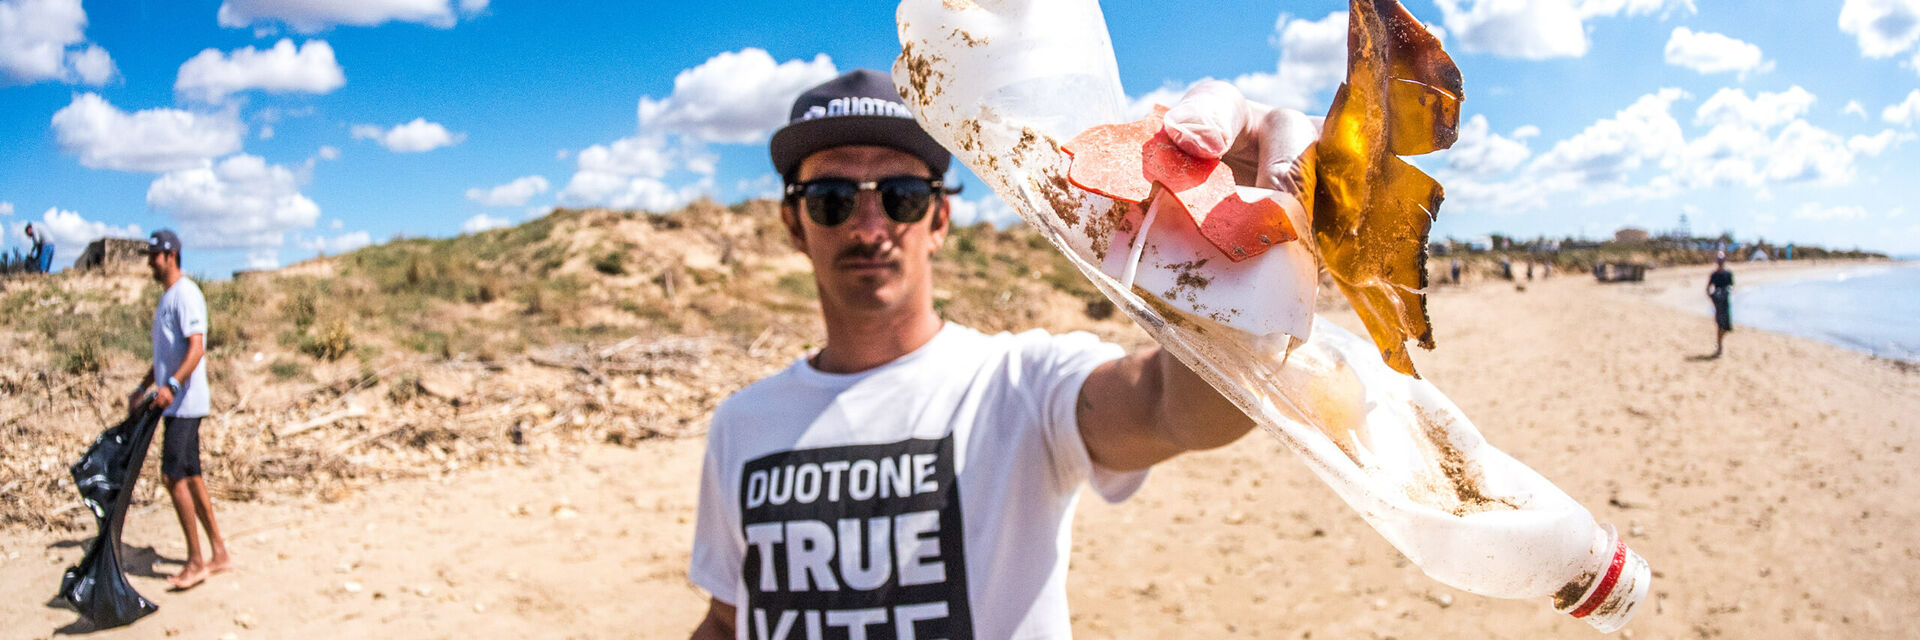 Duotone Kiteboarding Sustainability Till interview